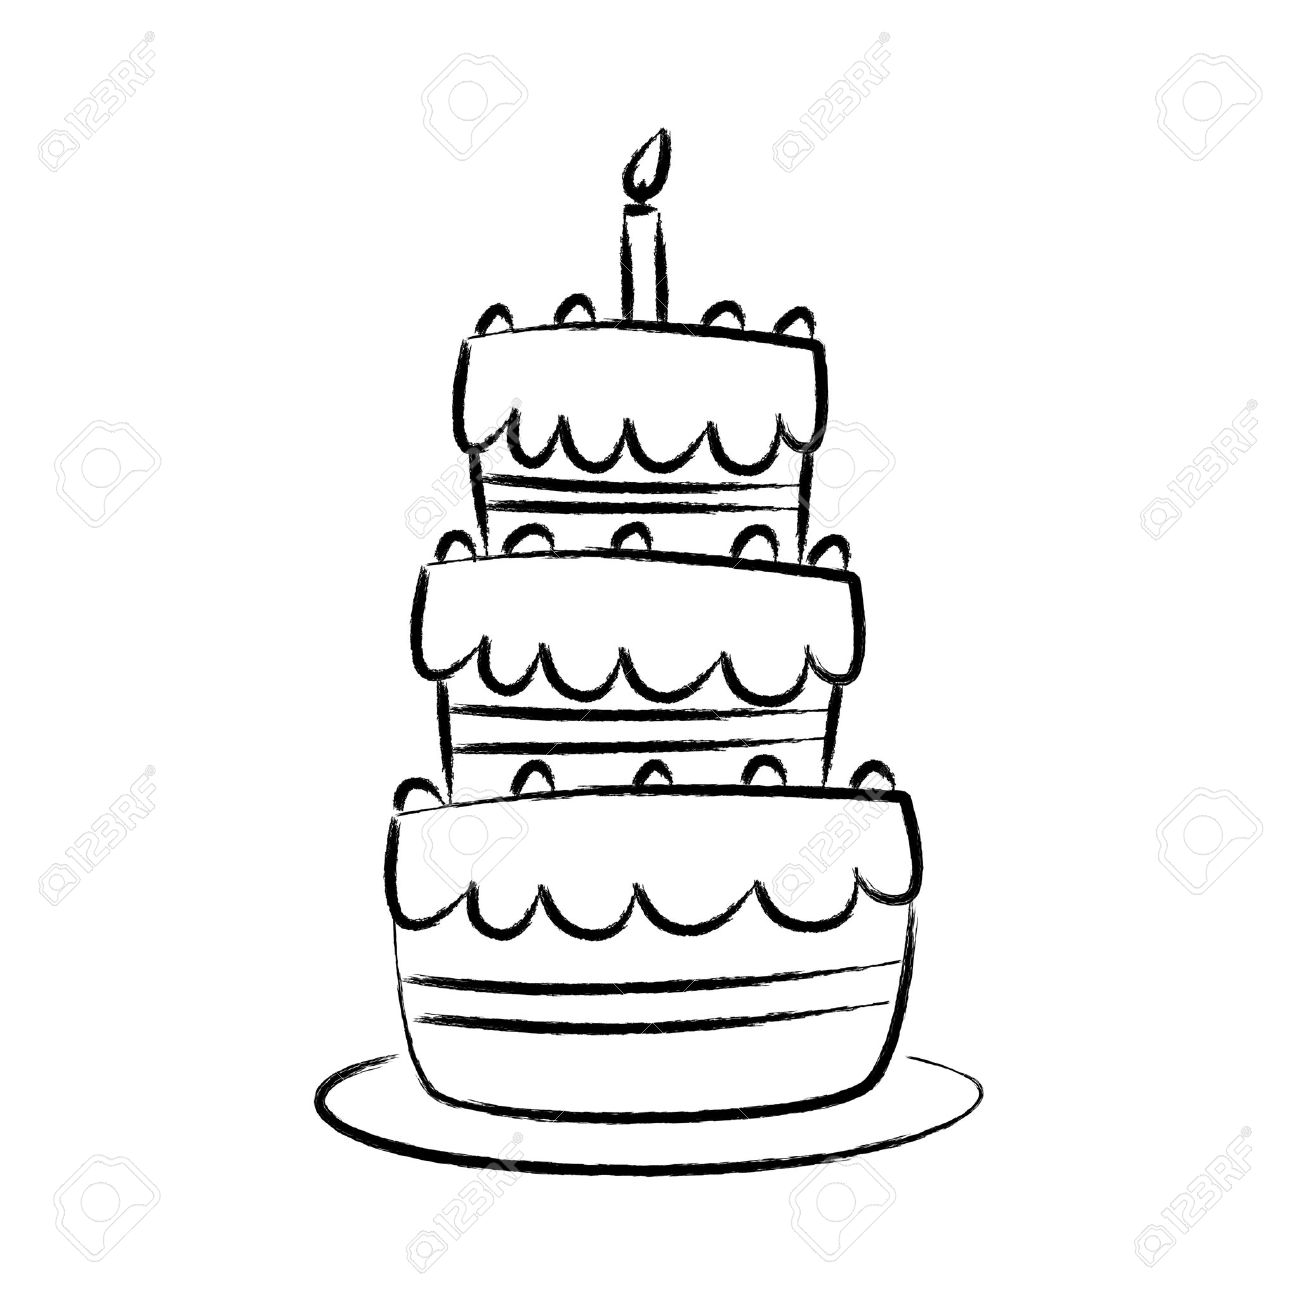 1300x1298 Drawing Of Cake Royalty Free Cliparts, Vectors, And Stock